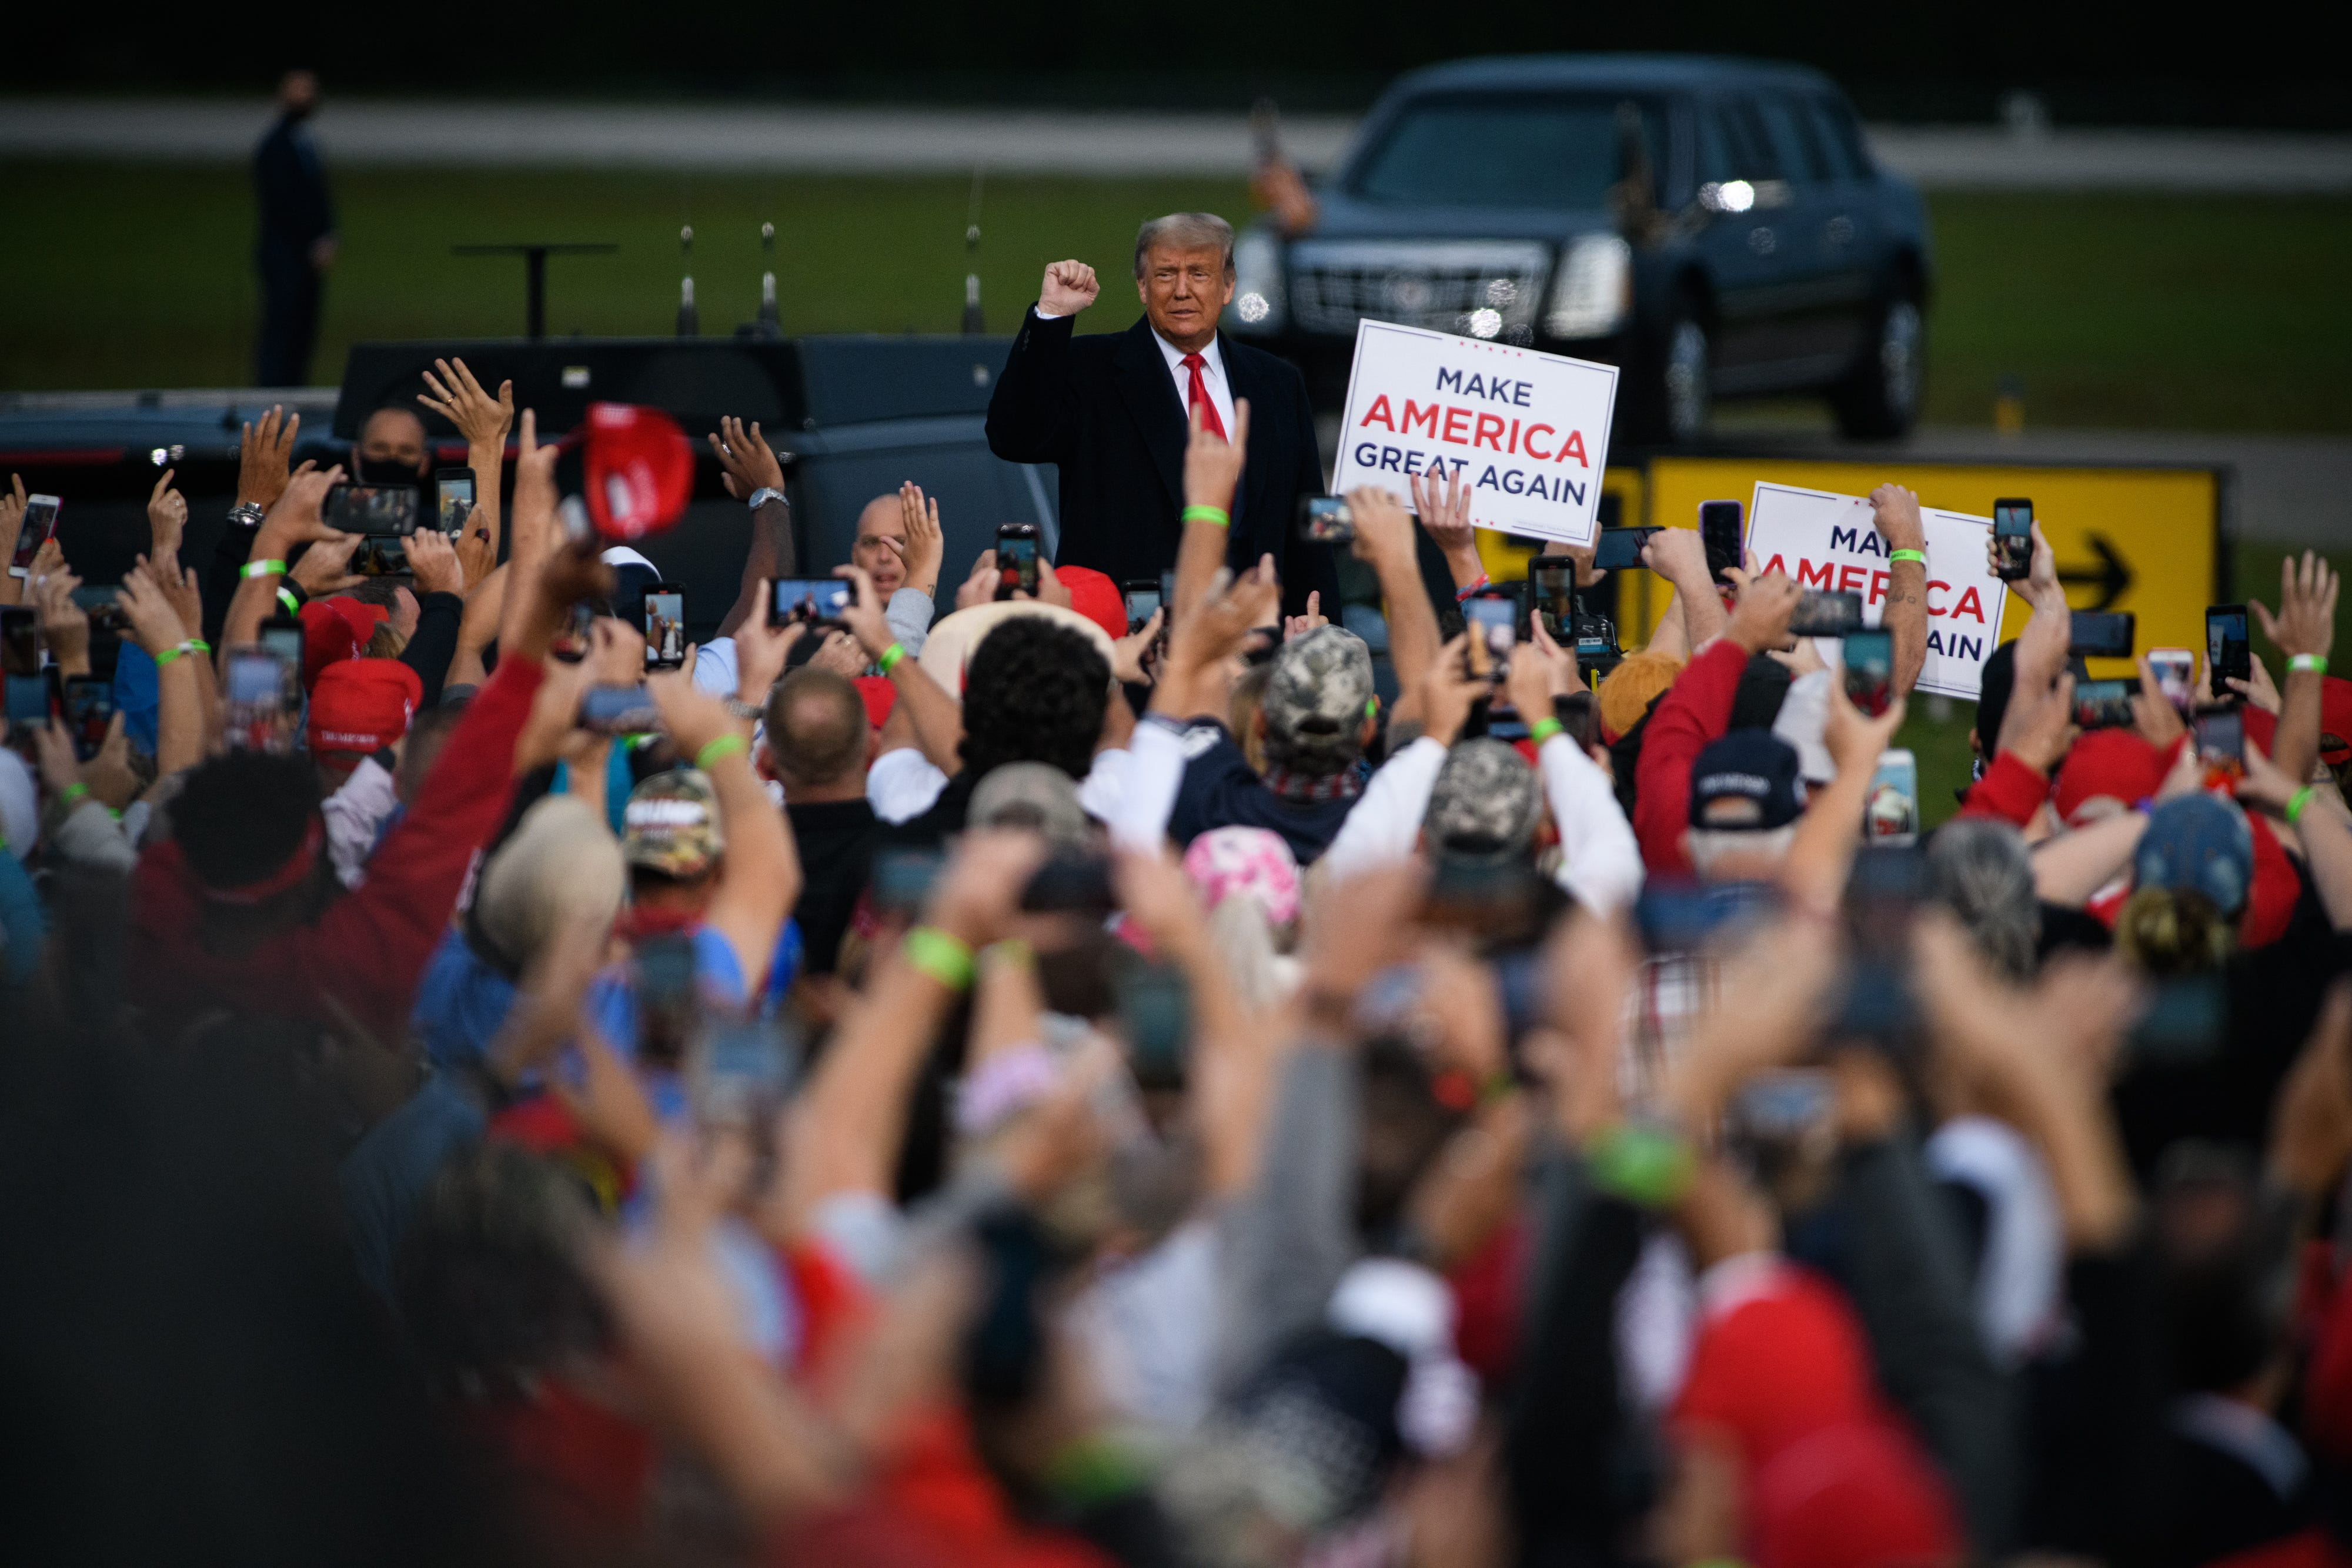 President Donald Trump campaign rally at the Fayetteville Regional Airport in Fayetteville, N.C., on Sept. 19. Trump has visited the Tar Heel state regularly this campaign season.